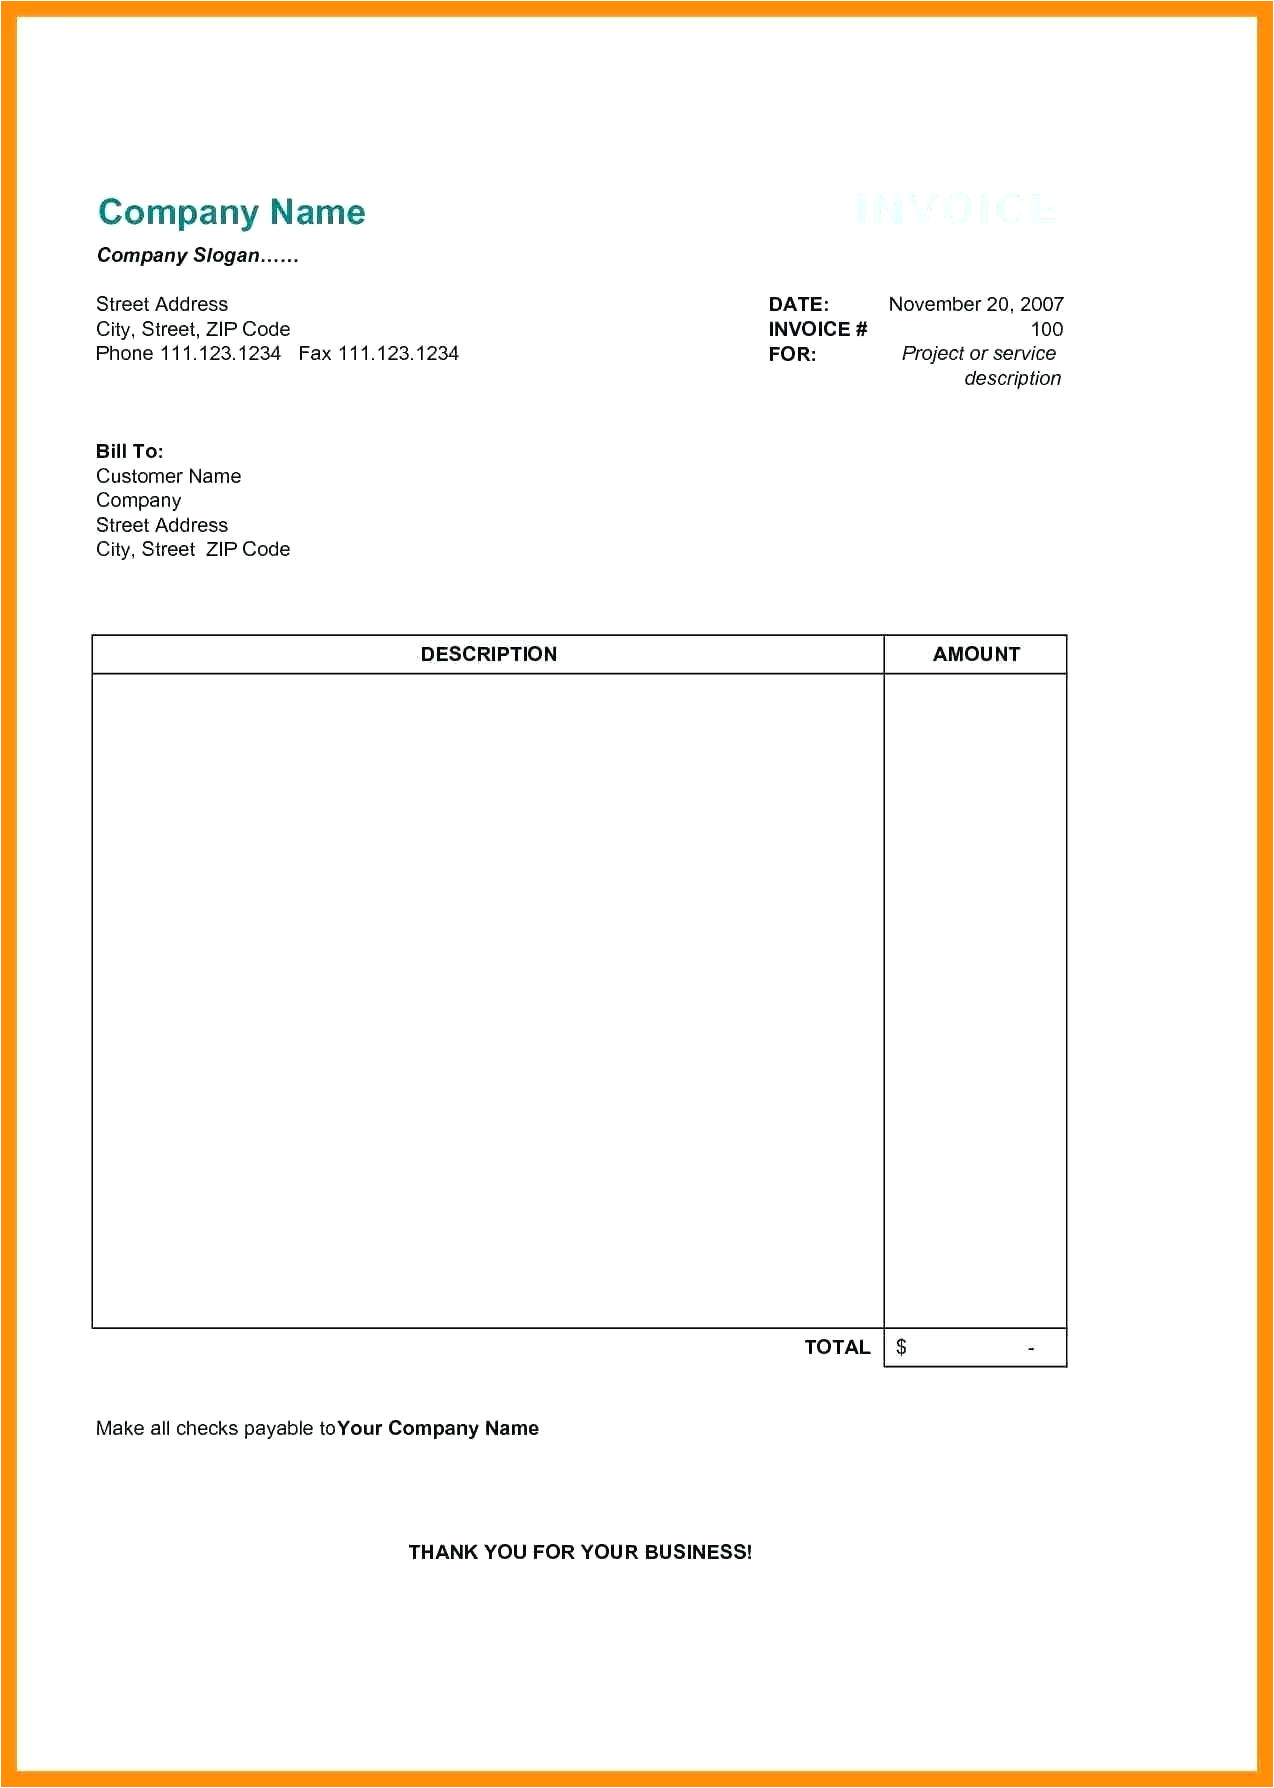 notary invoice sample